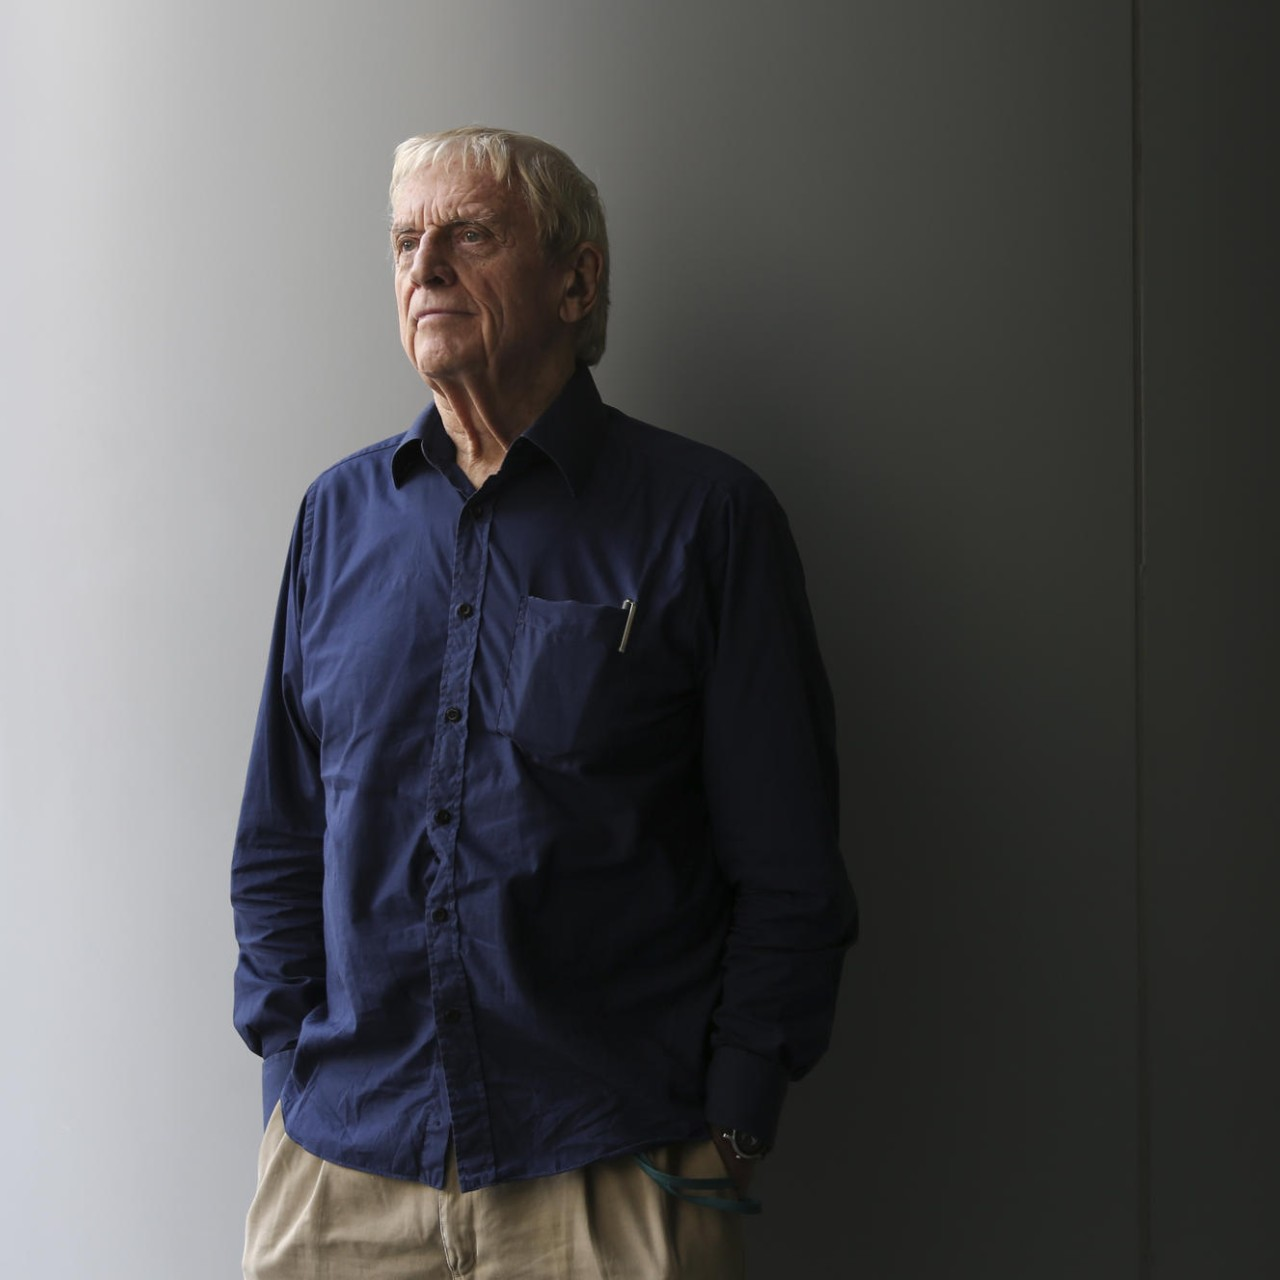 Ted Thomas on his time in the spotlight | South China Morning Post